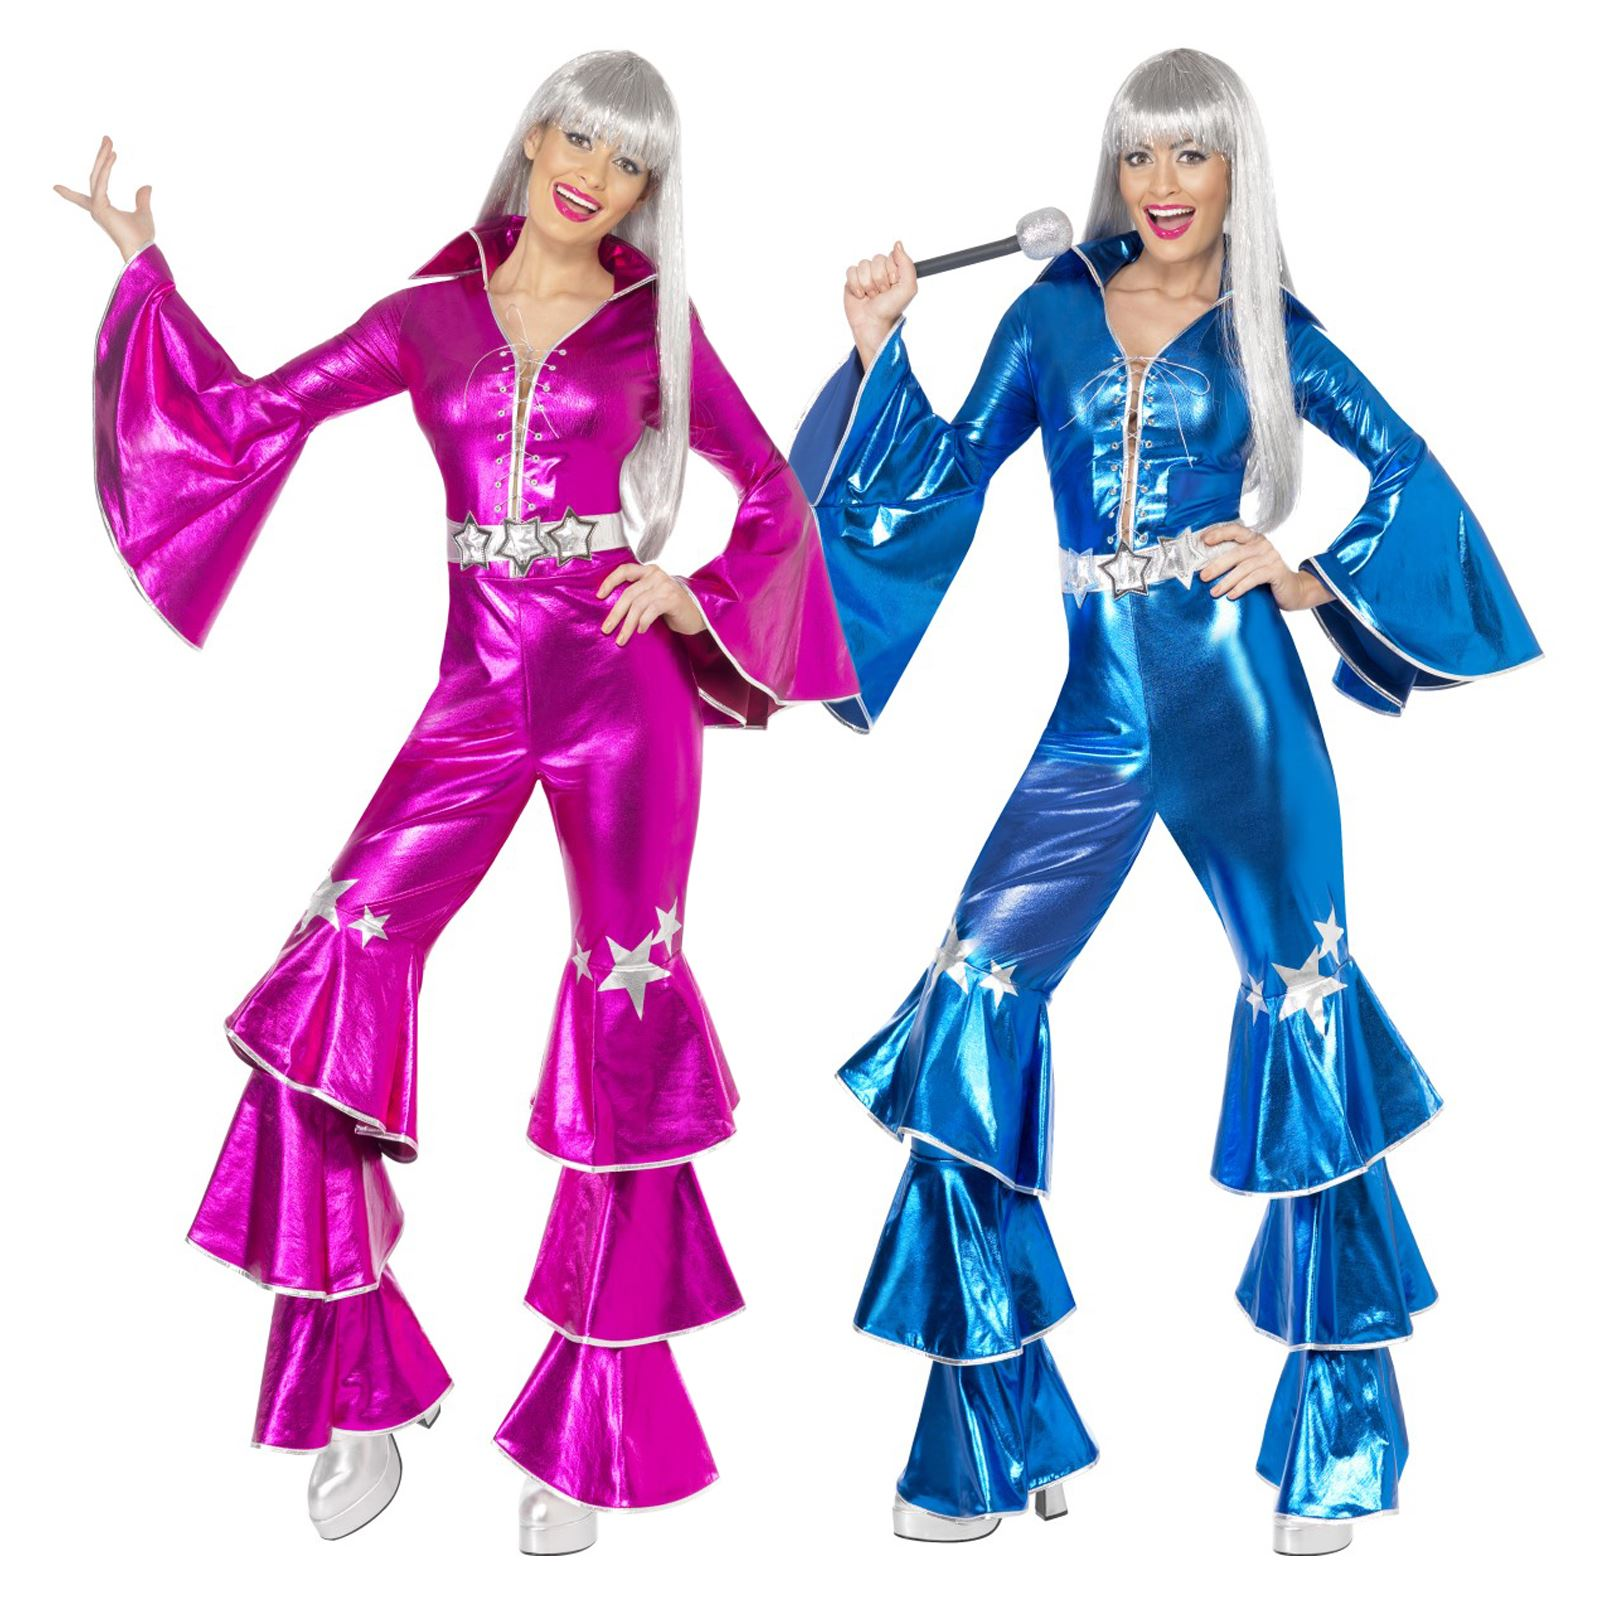 Adult Ladies 70s Disco Dancing Metallic Jumpsuit Flares Pop Star Costume Singers